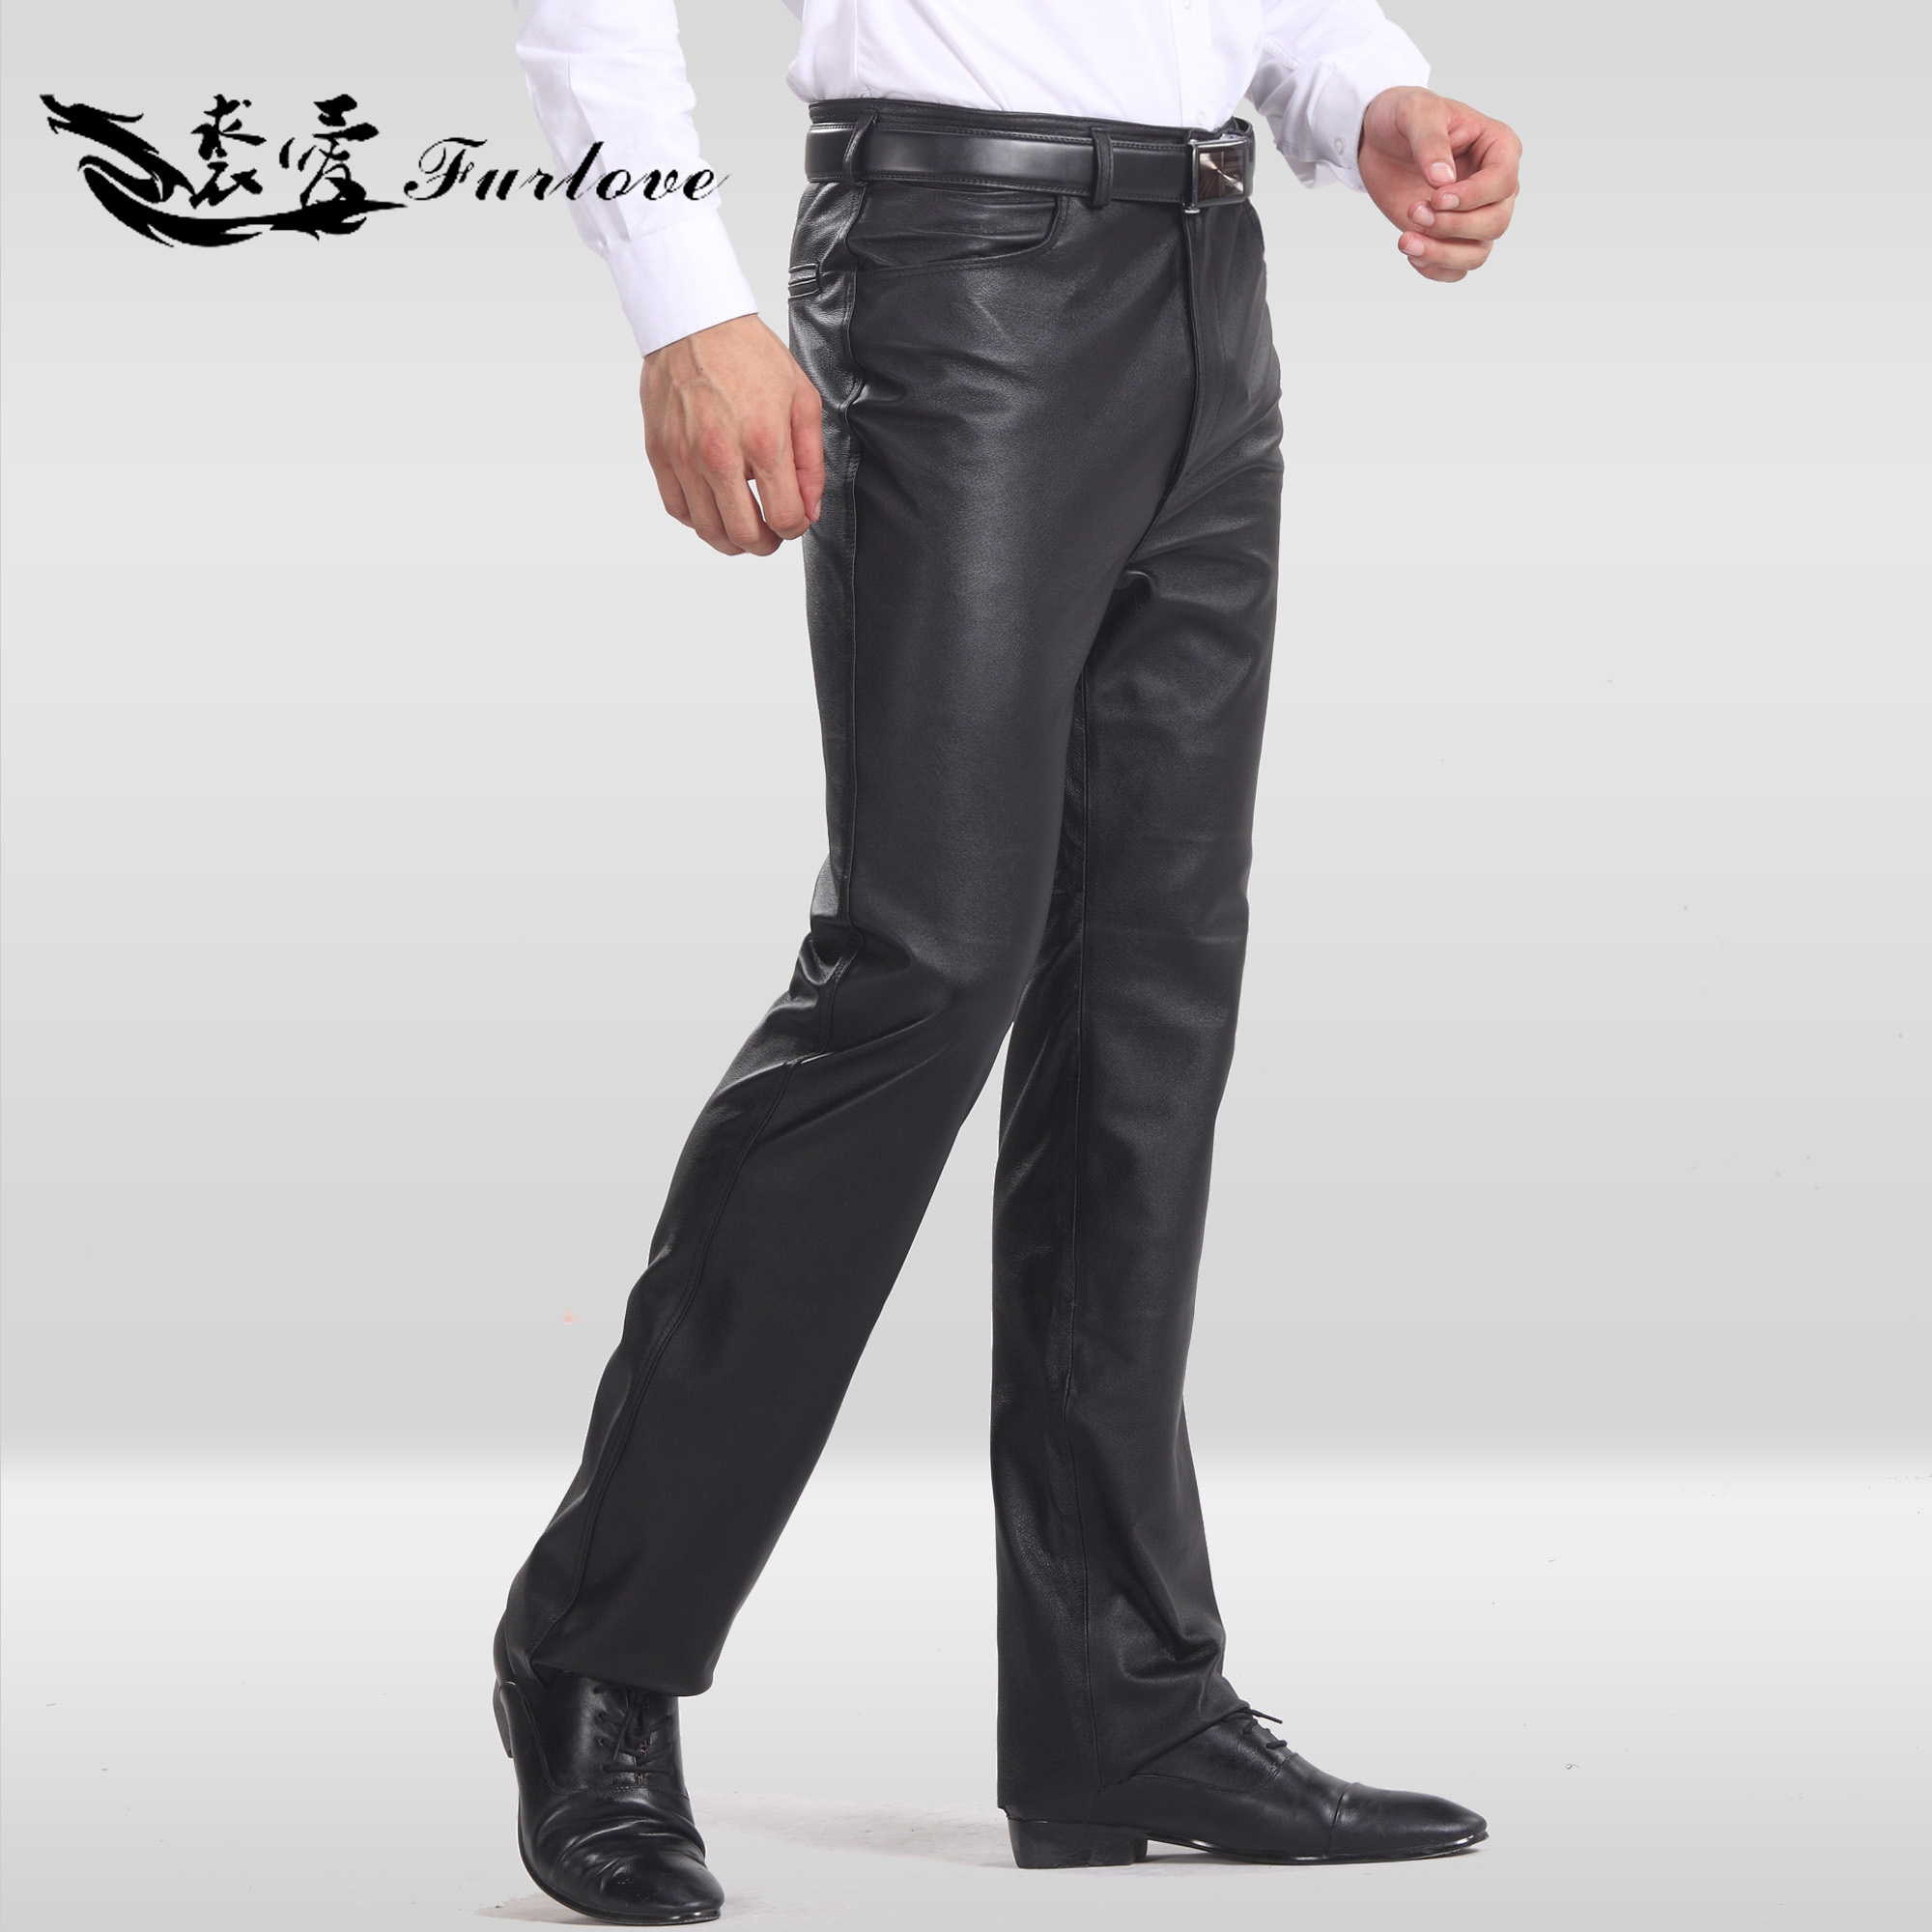 Furlove special offer autumn/winter men's trousers straight leather pants motorcycle biker leather and cotton plus size trousers